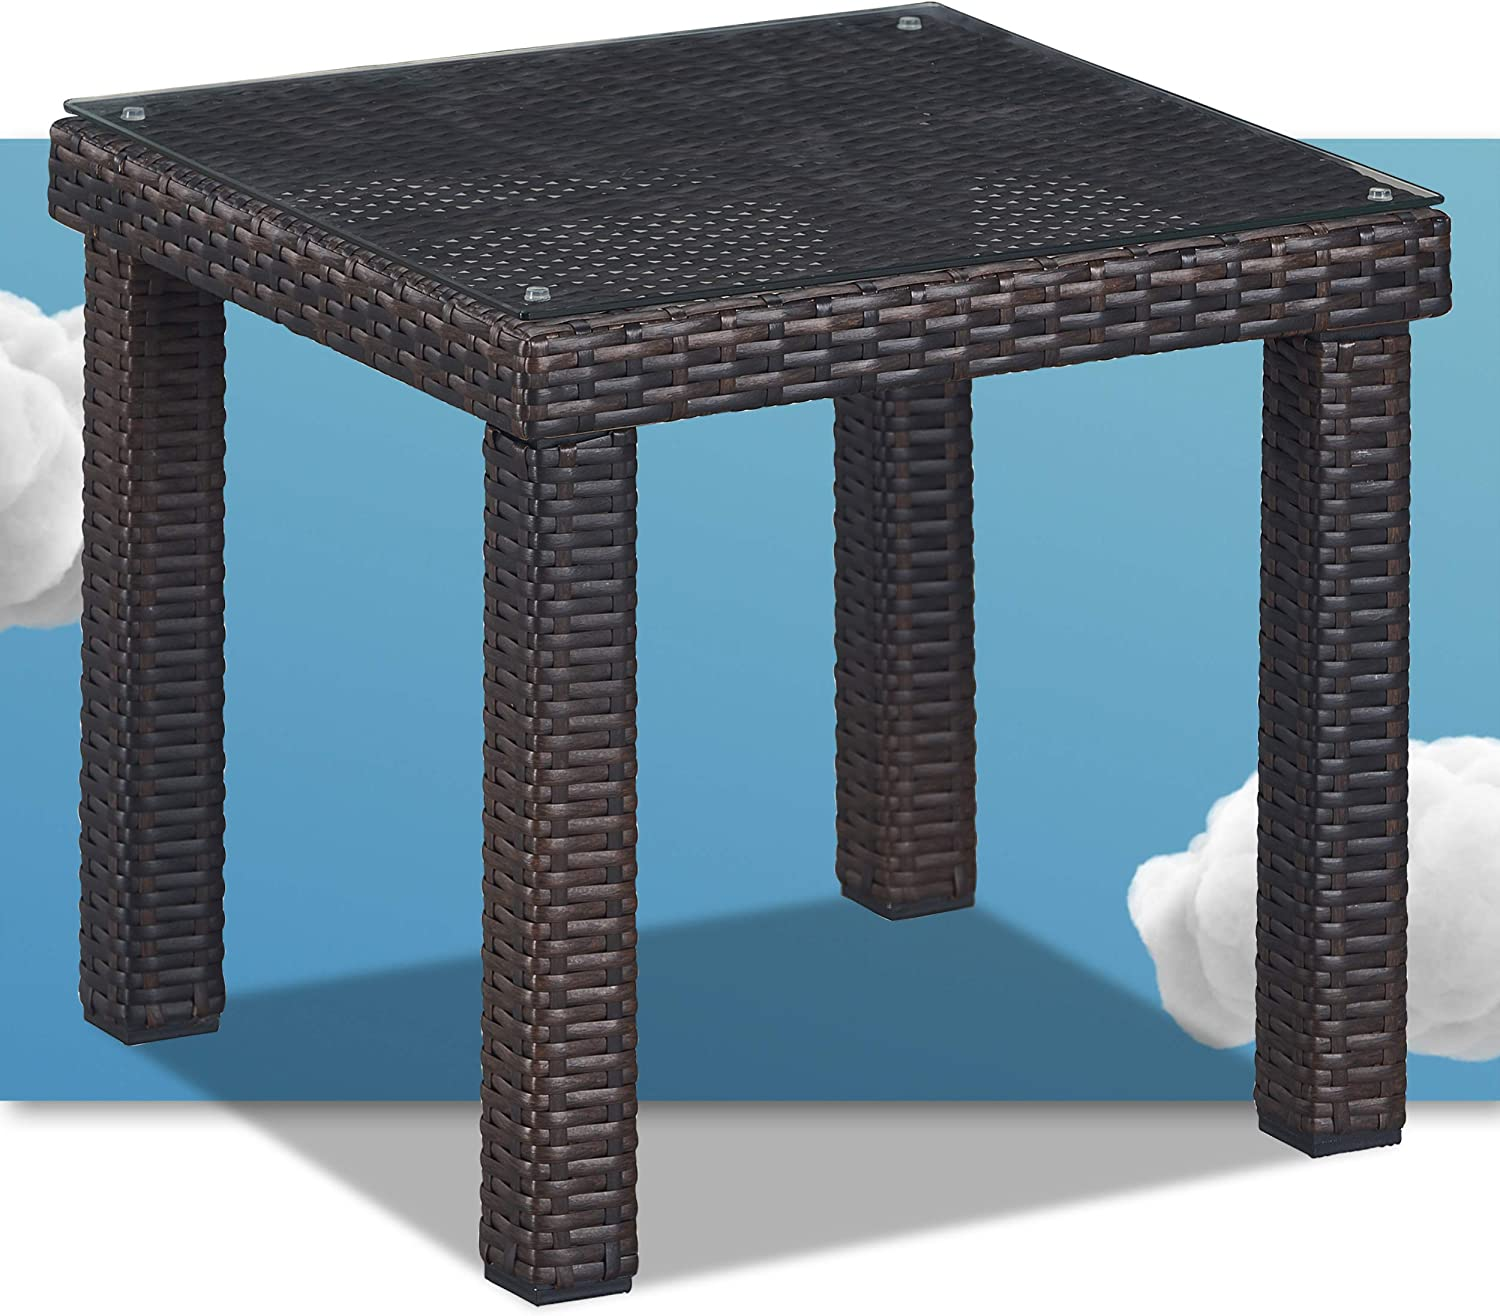 Serta Tahoe Brown Resin Wicker Outdoor Patio Furniture Collection Porch or Pool, Garden, All-Weather with Thick Seat Cushion, Side Table